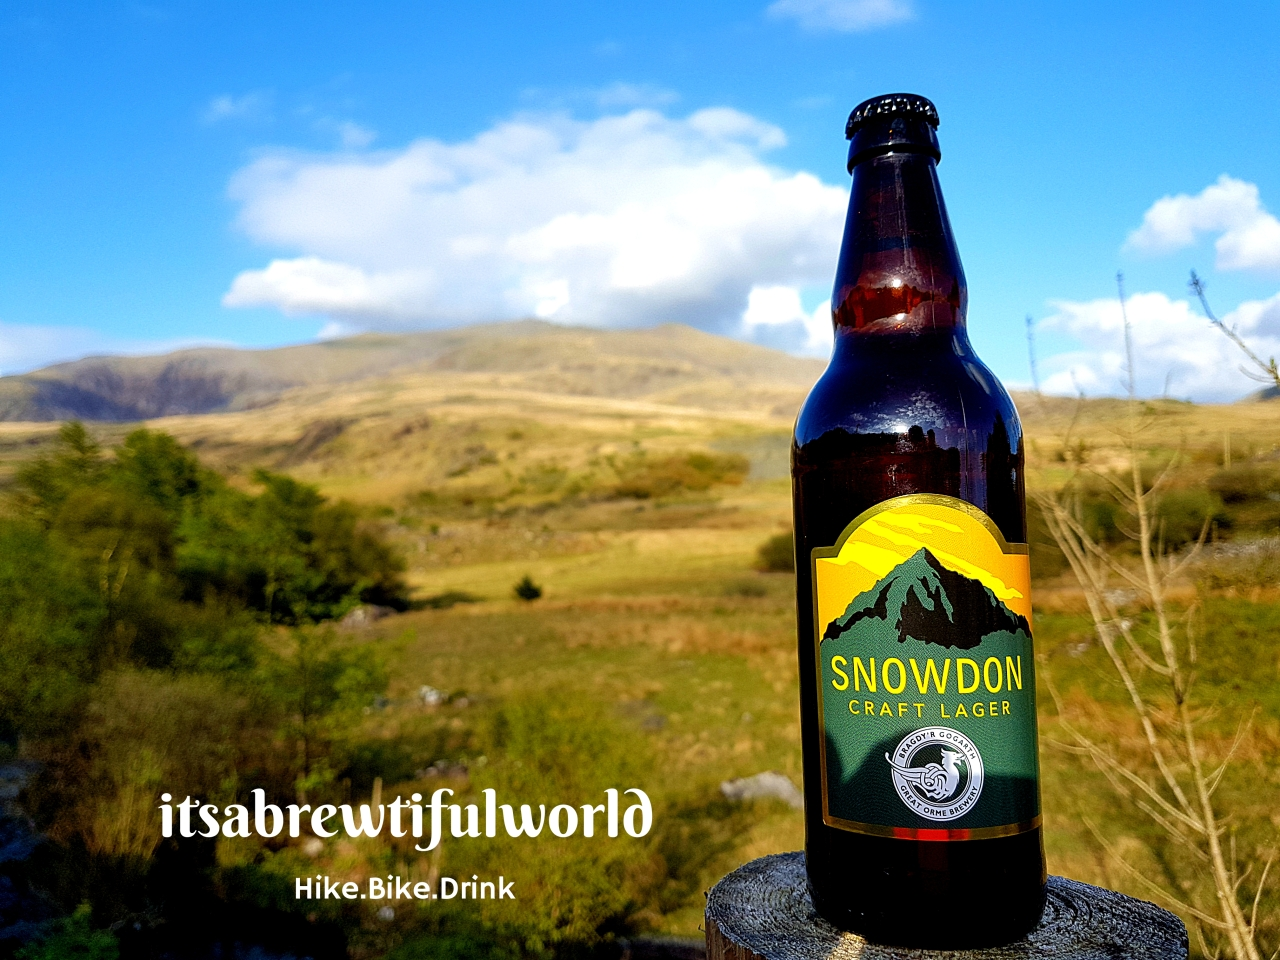 Hike the Brewtifulworld: Mount Snowdon